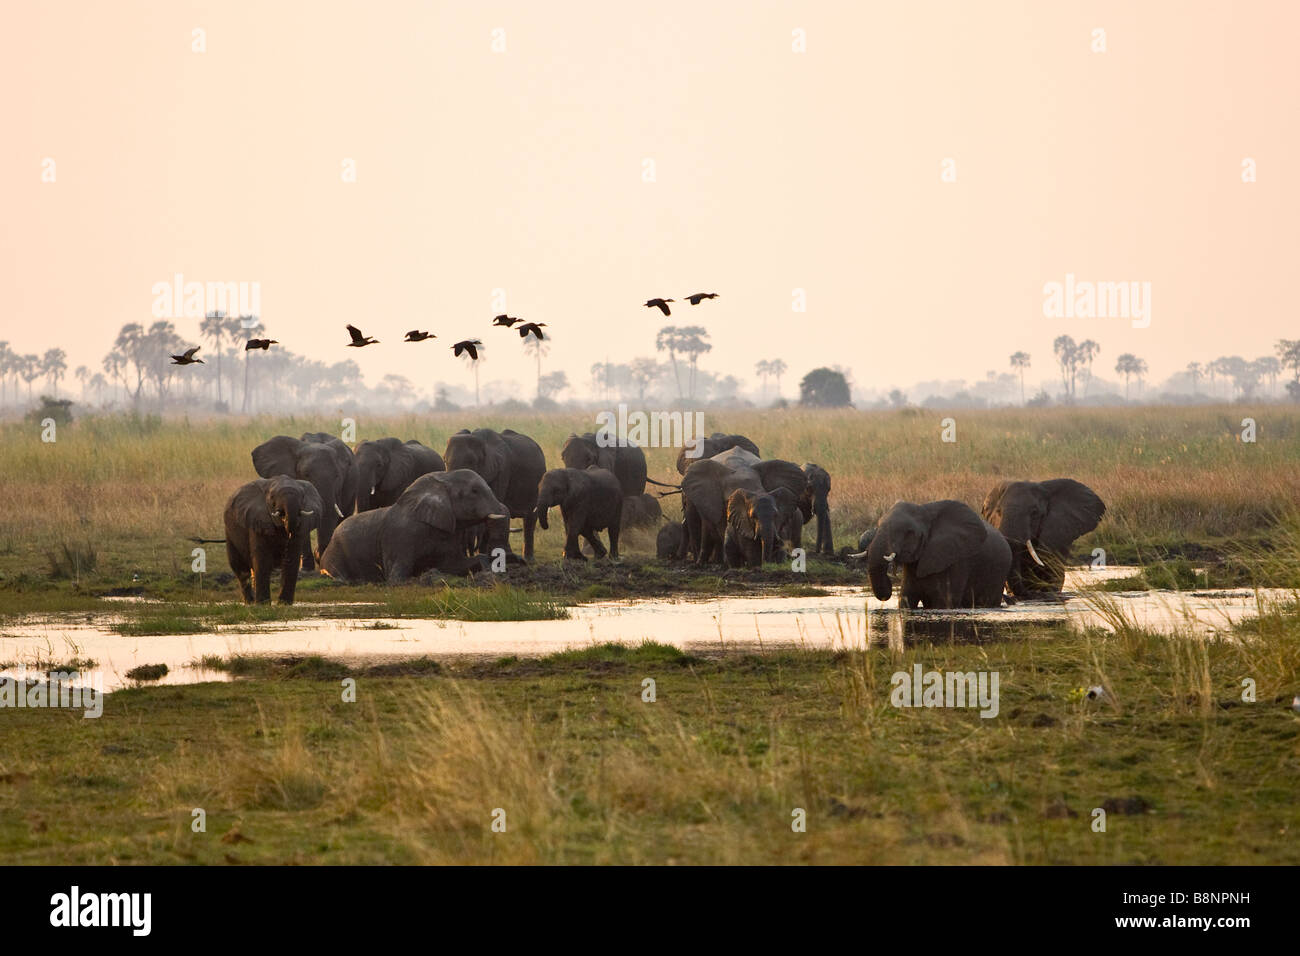 a herd of elephant at a water hole in northern Botswana - Stock Image